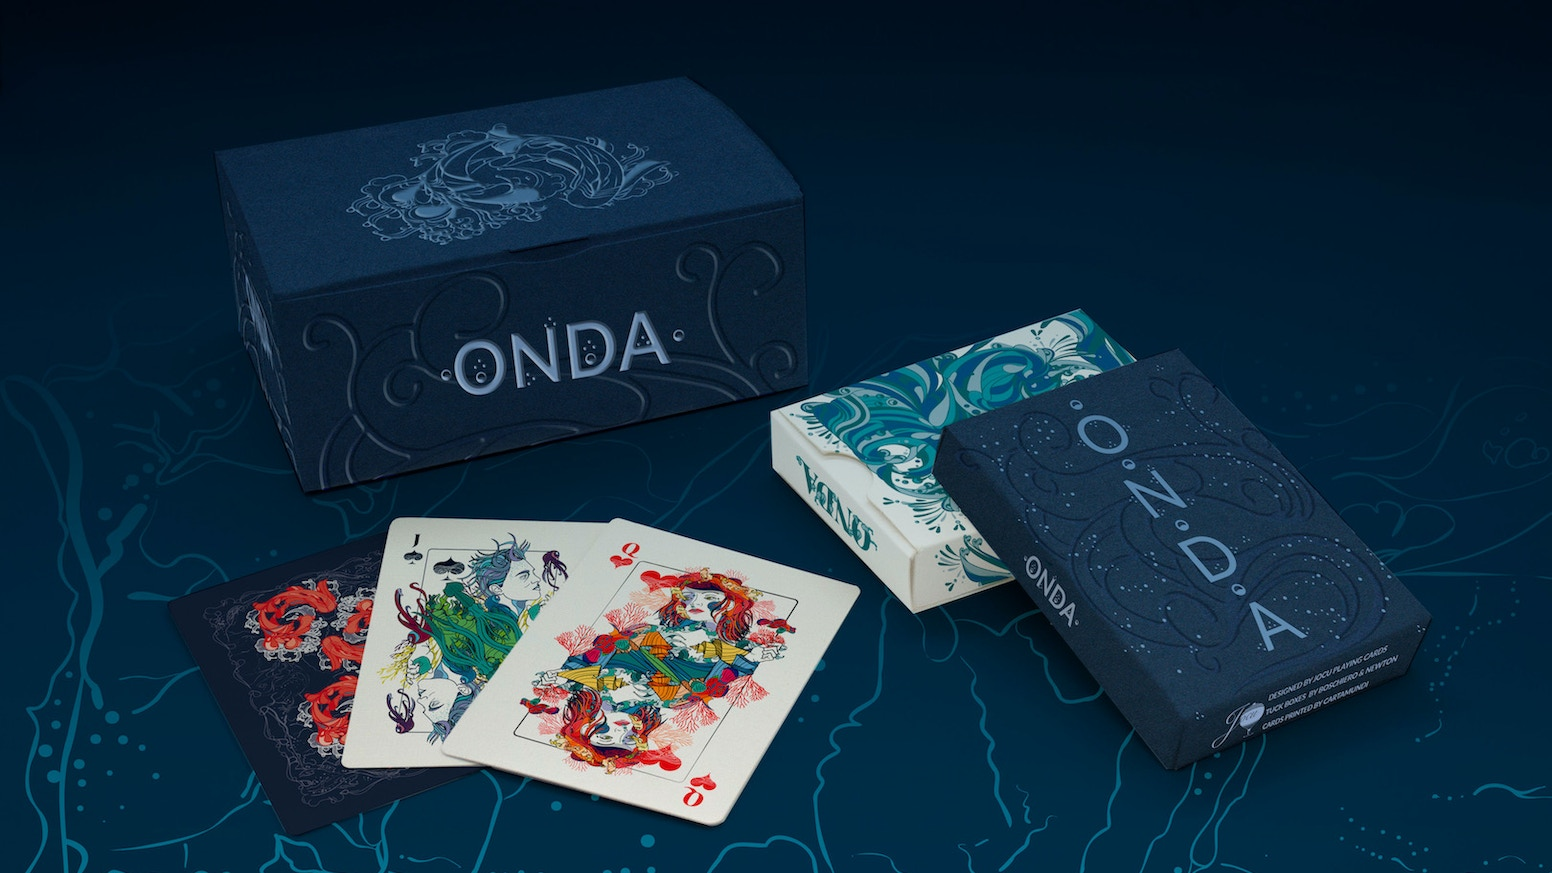 Explore the abyssal depths of a mythical ocean with ONDA playing cards. Shipped from USA and EU